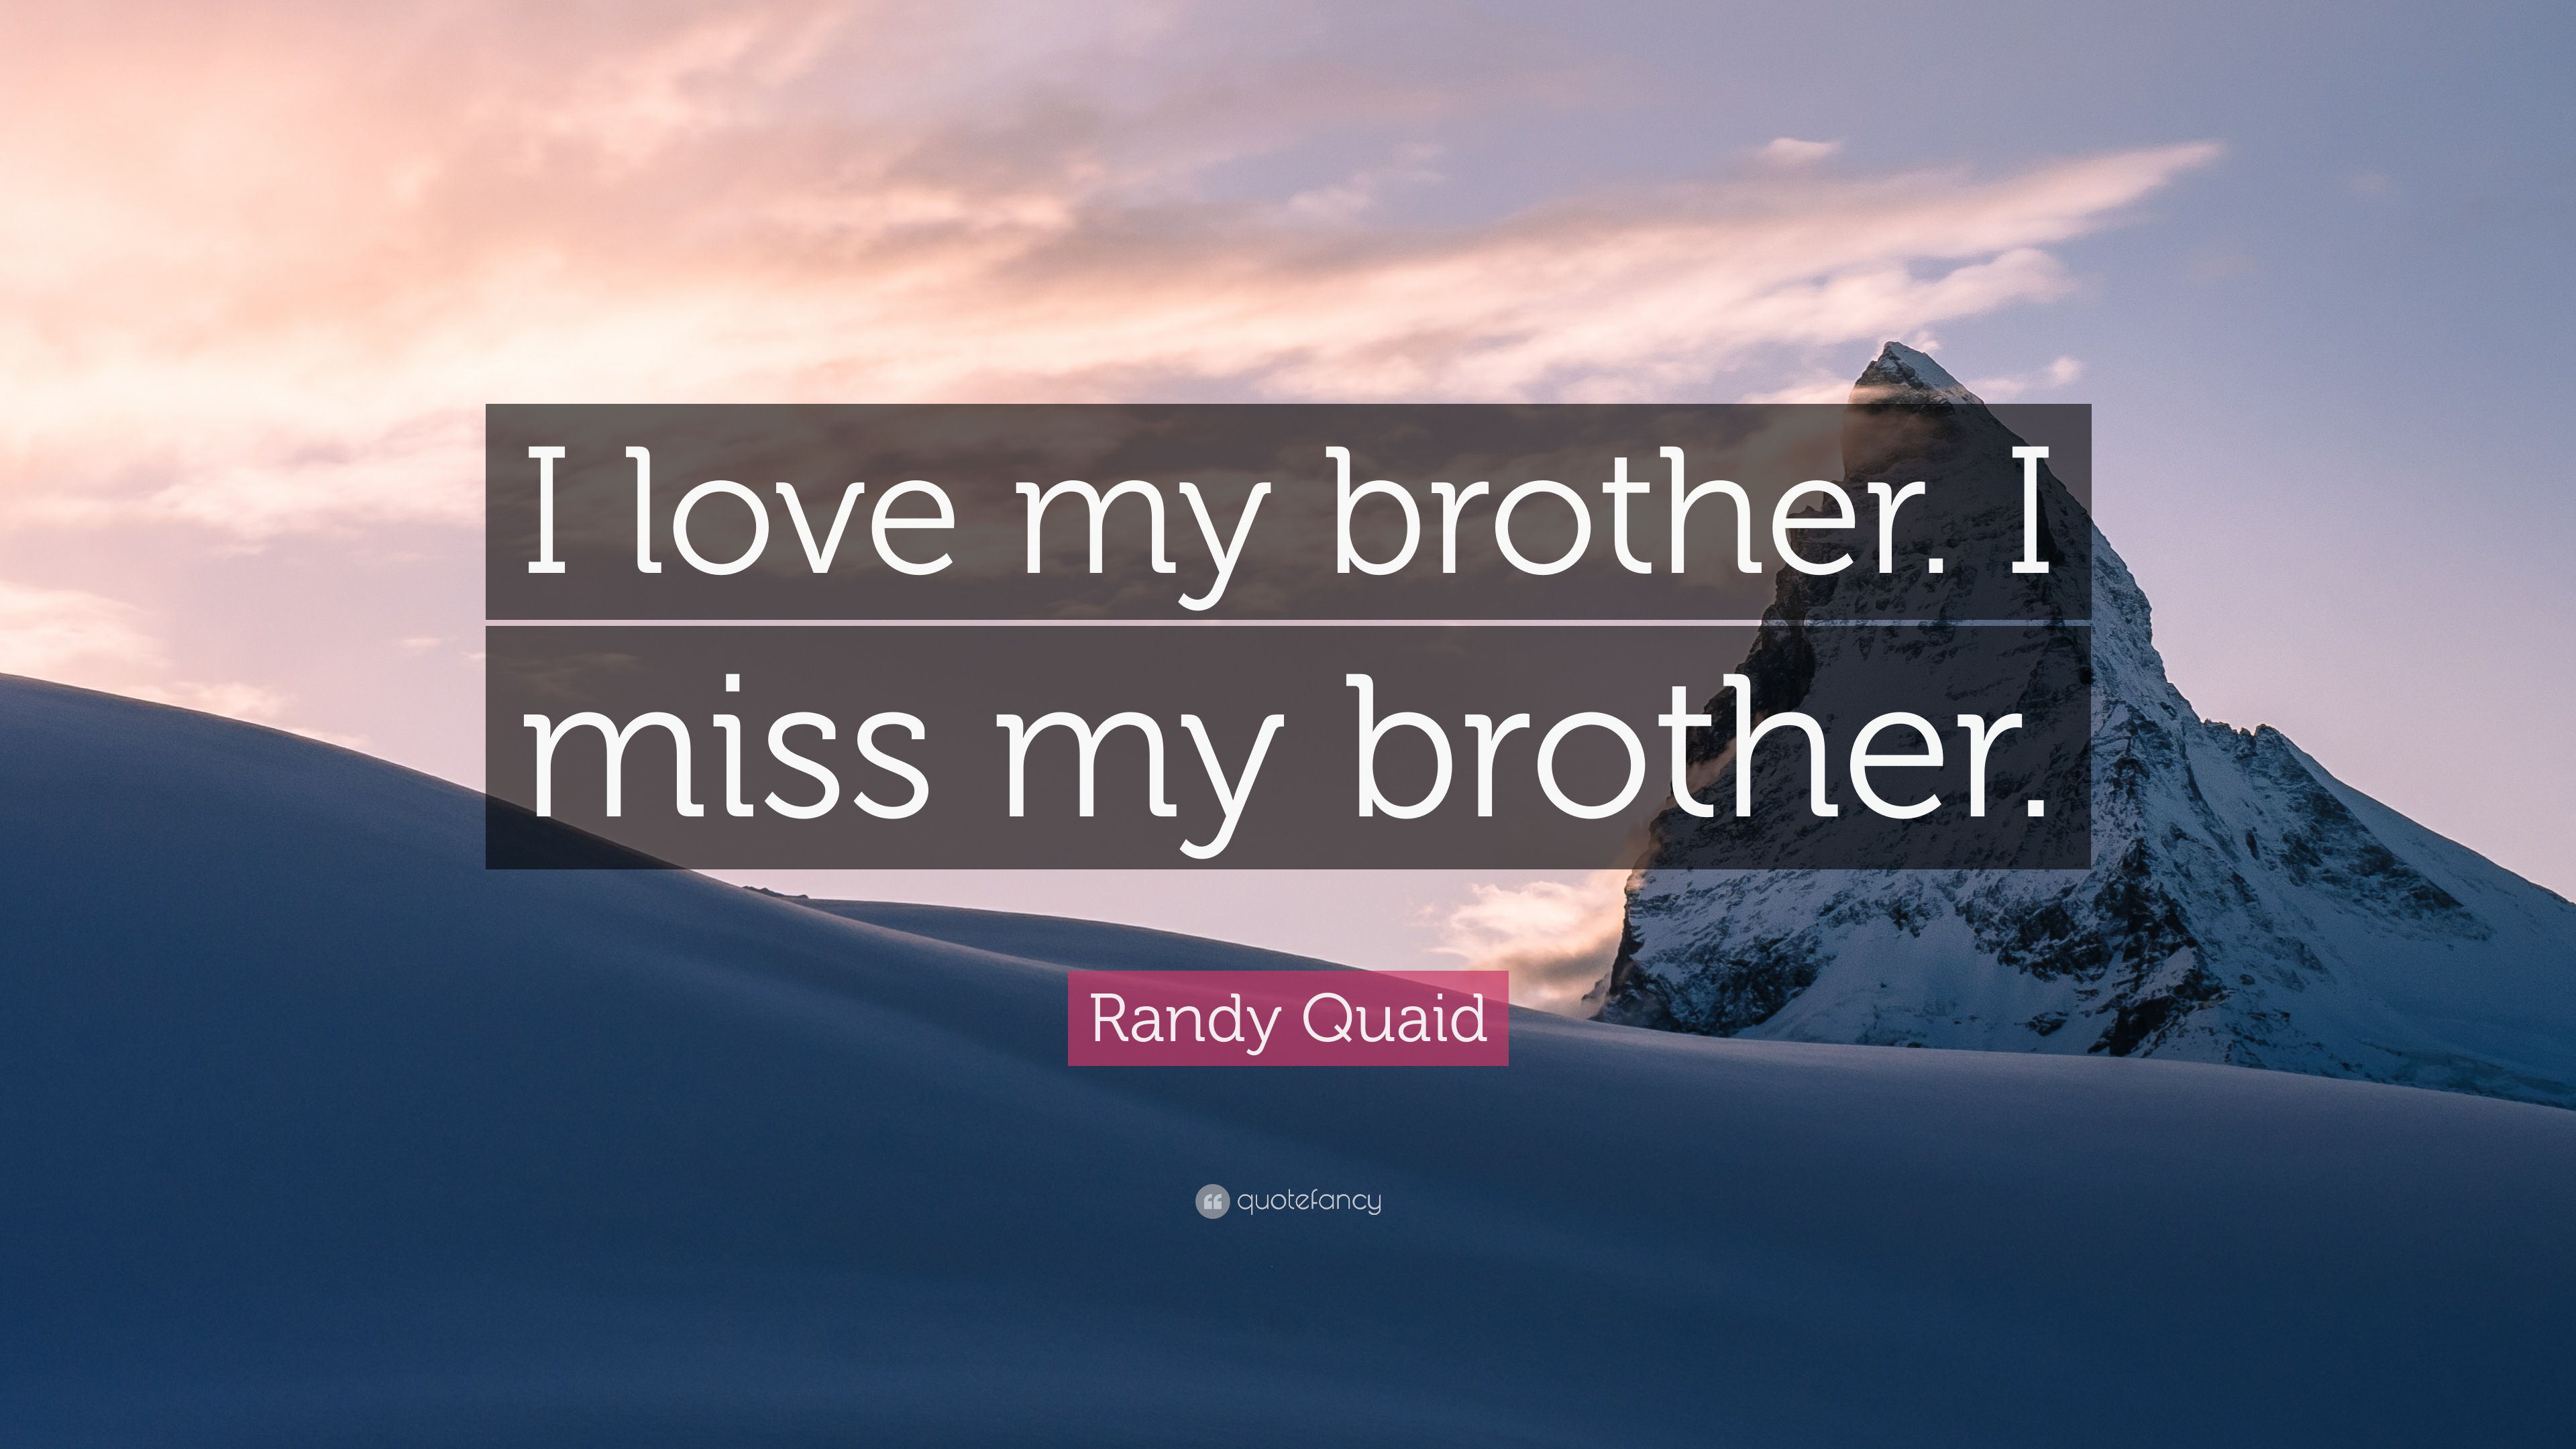 randy quaid quote i love my brother i miss my brother